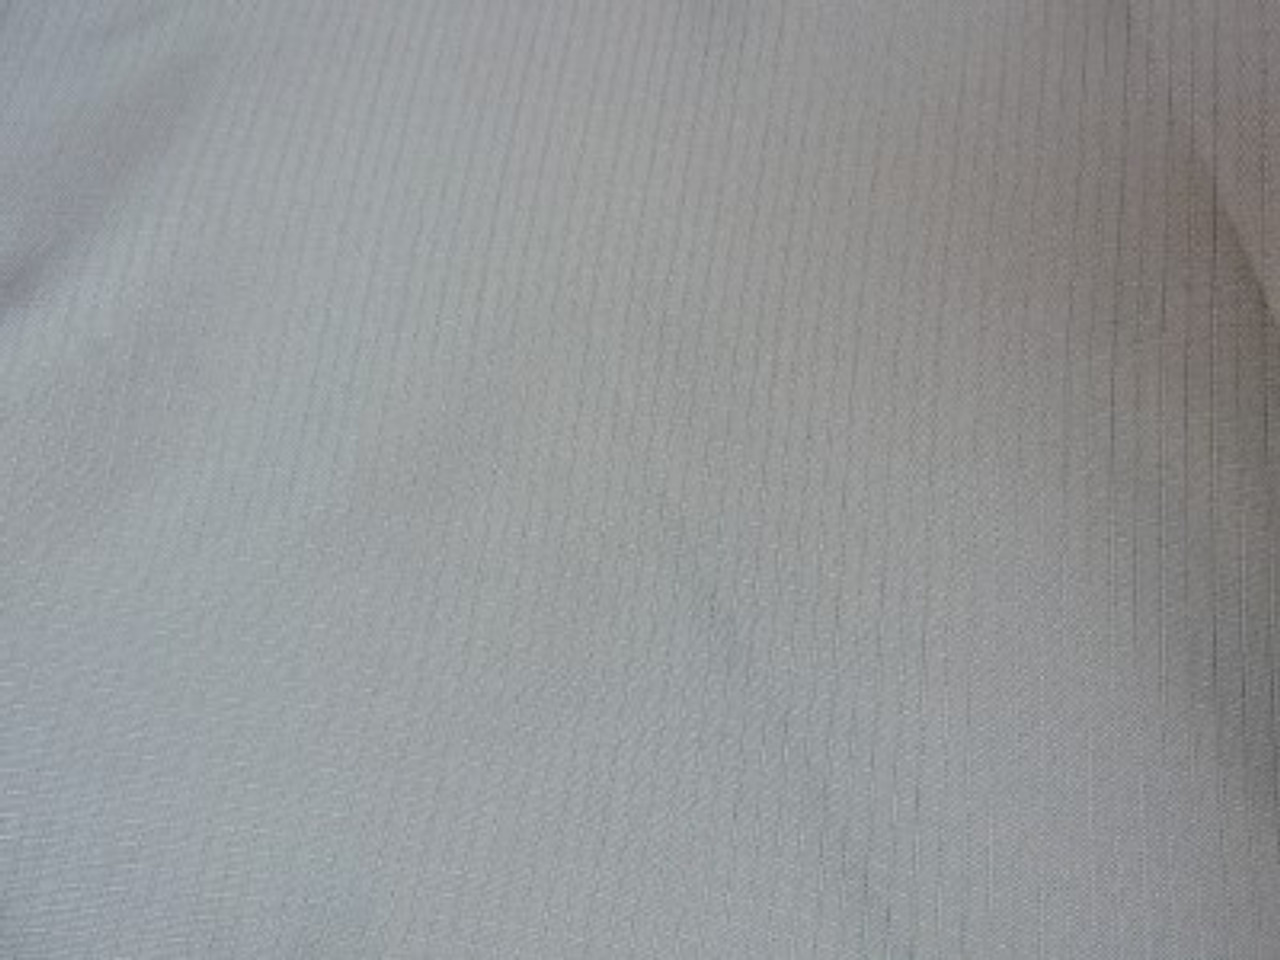 """Avalon tough """"Gridtex"""" double stitched UV fabric in a pleasing easy care grey colour"""